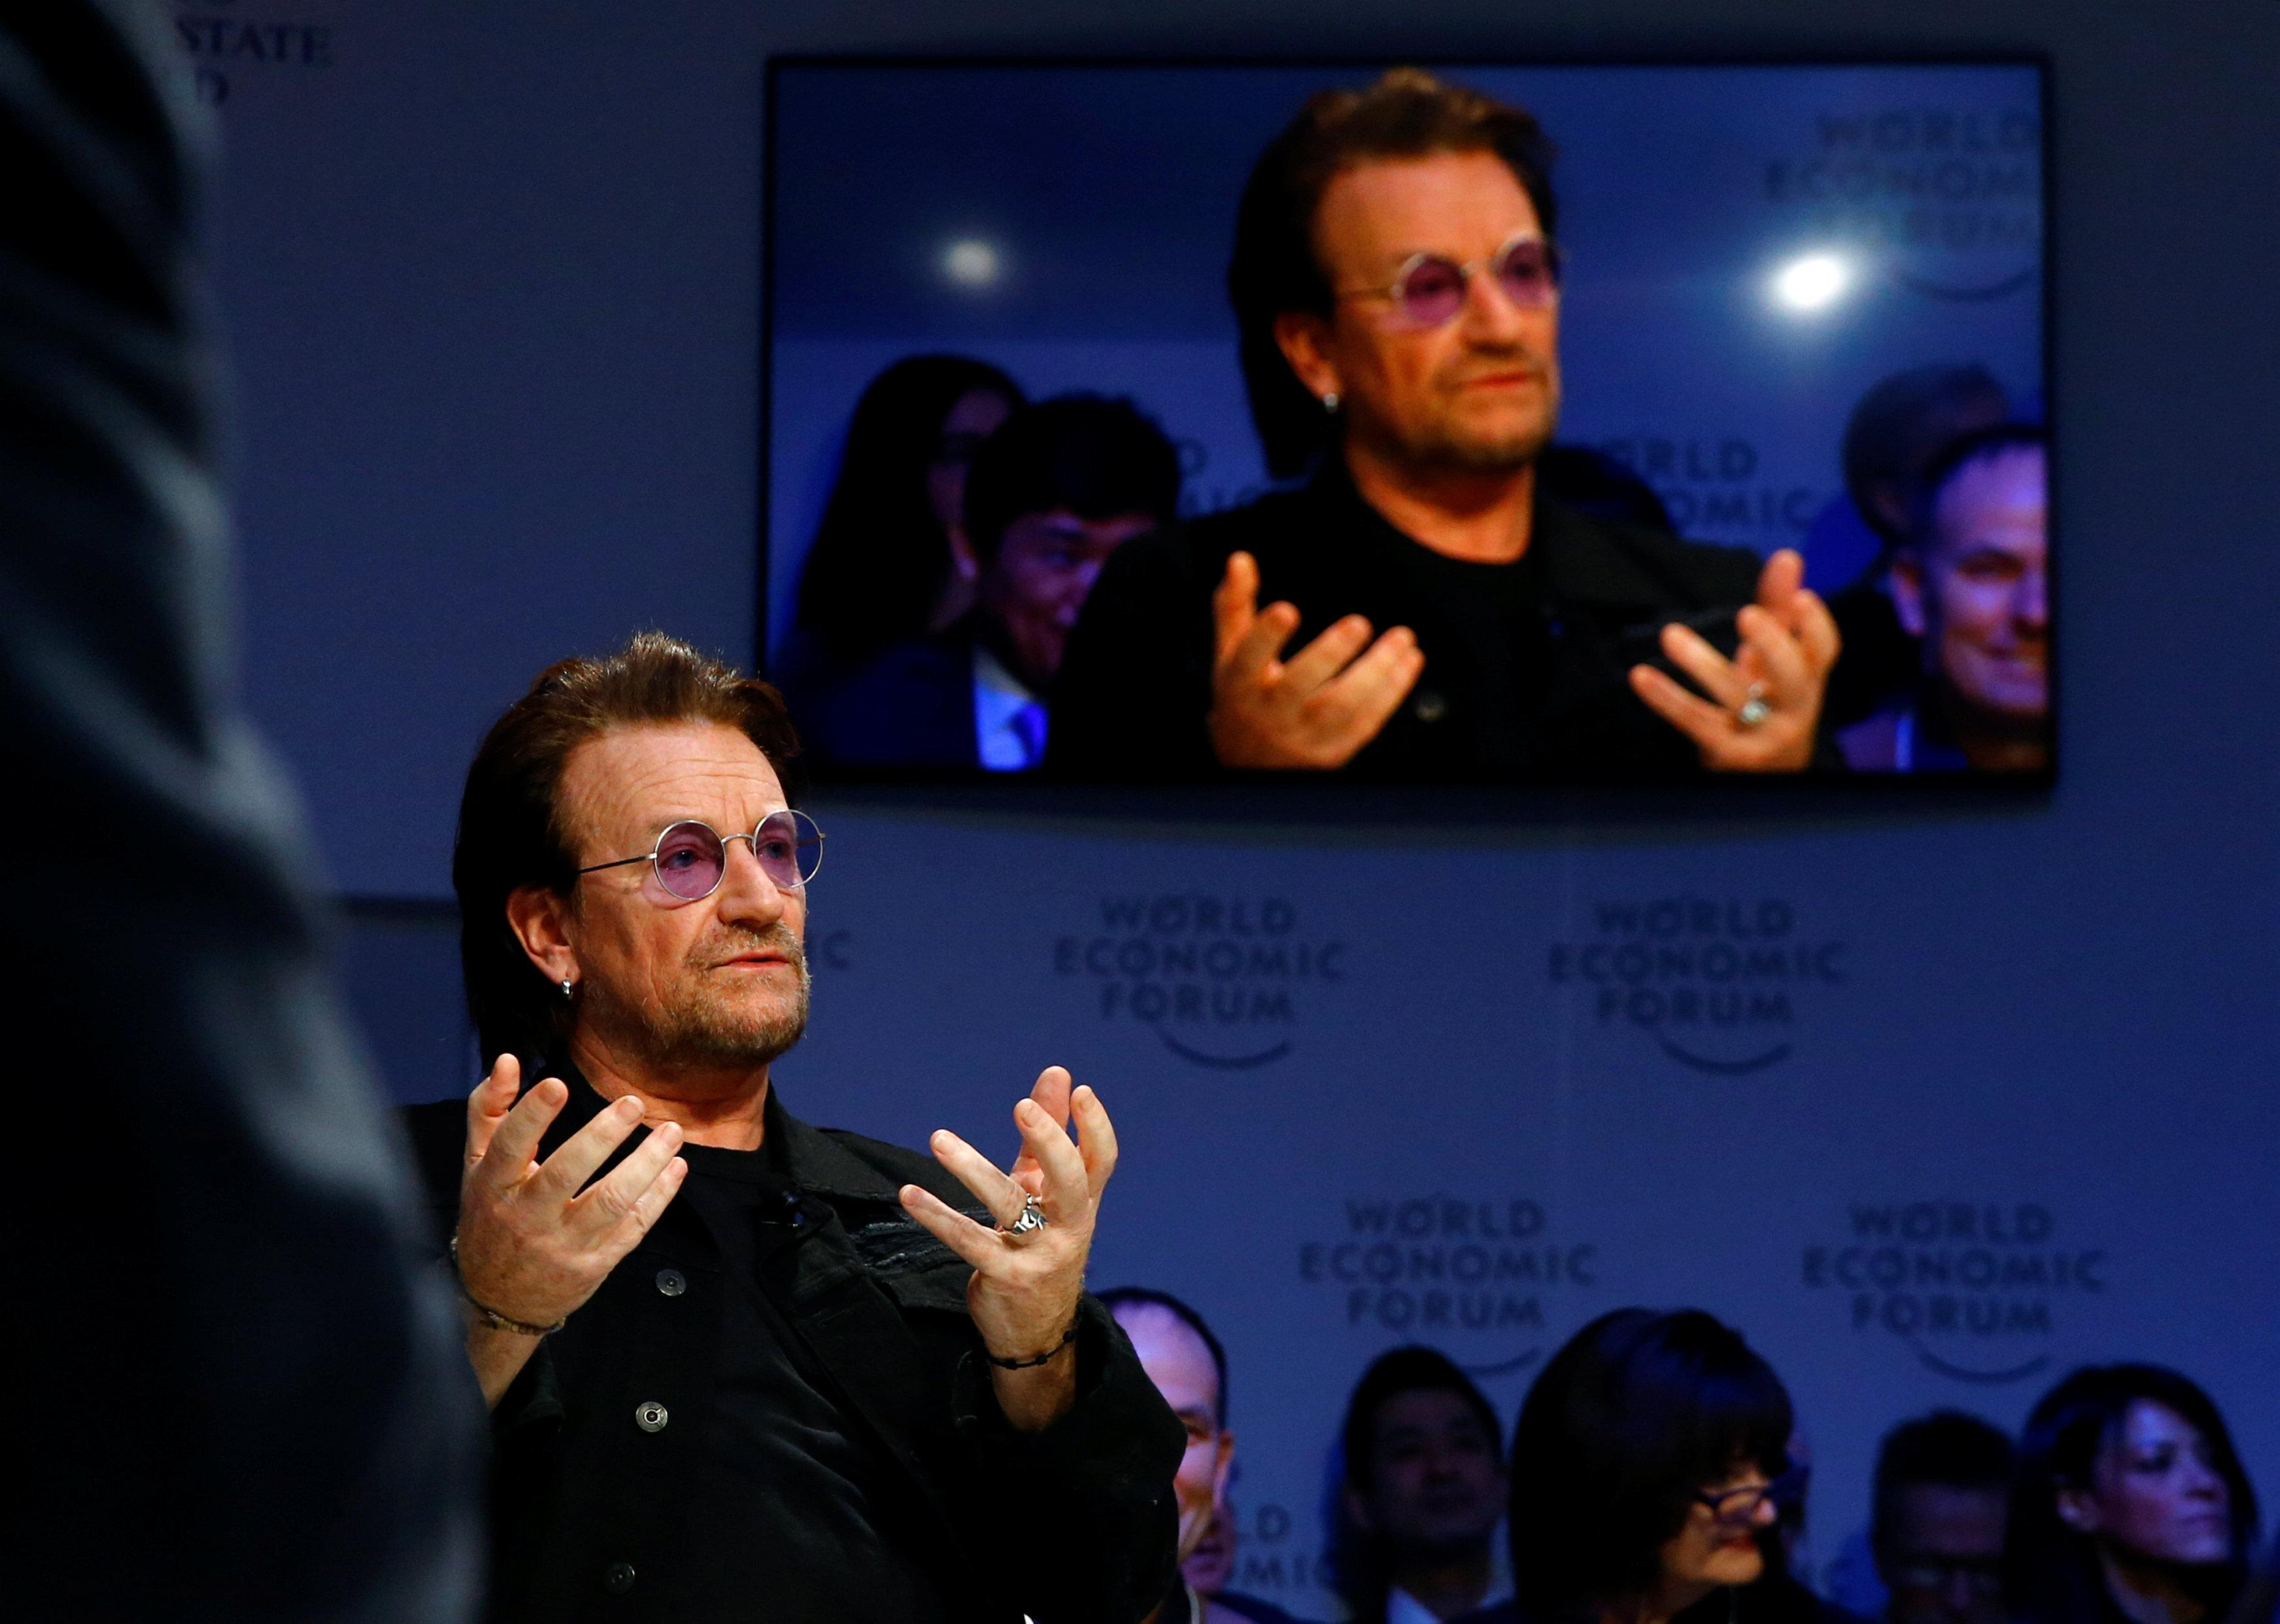 Bono tells Davos sustainable development goals 'sound like a sexually transmitted disease'